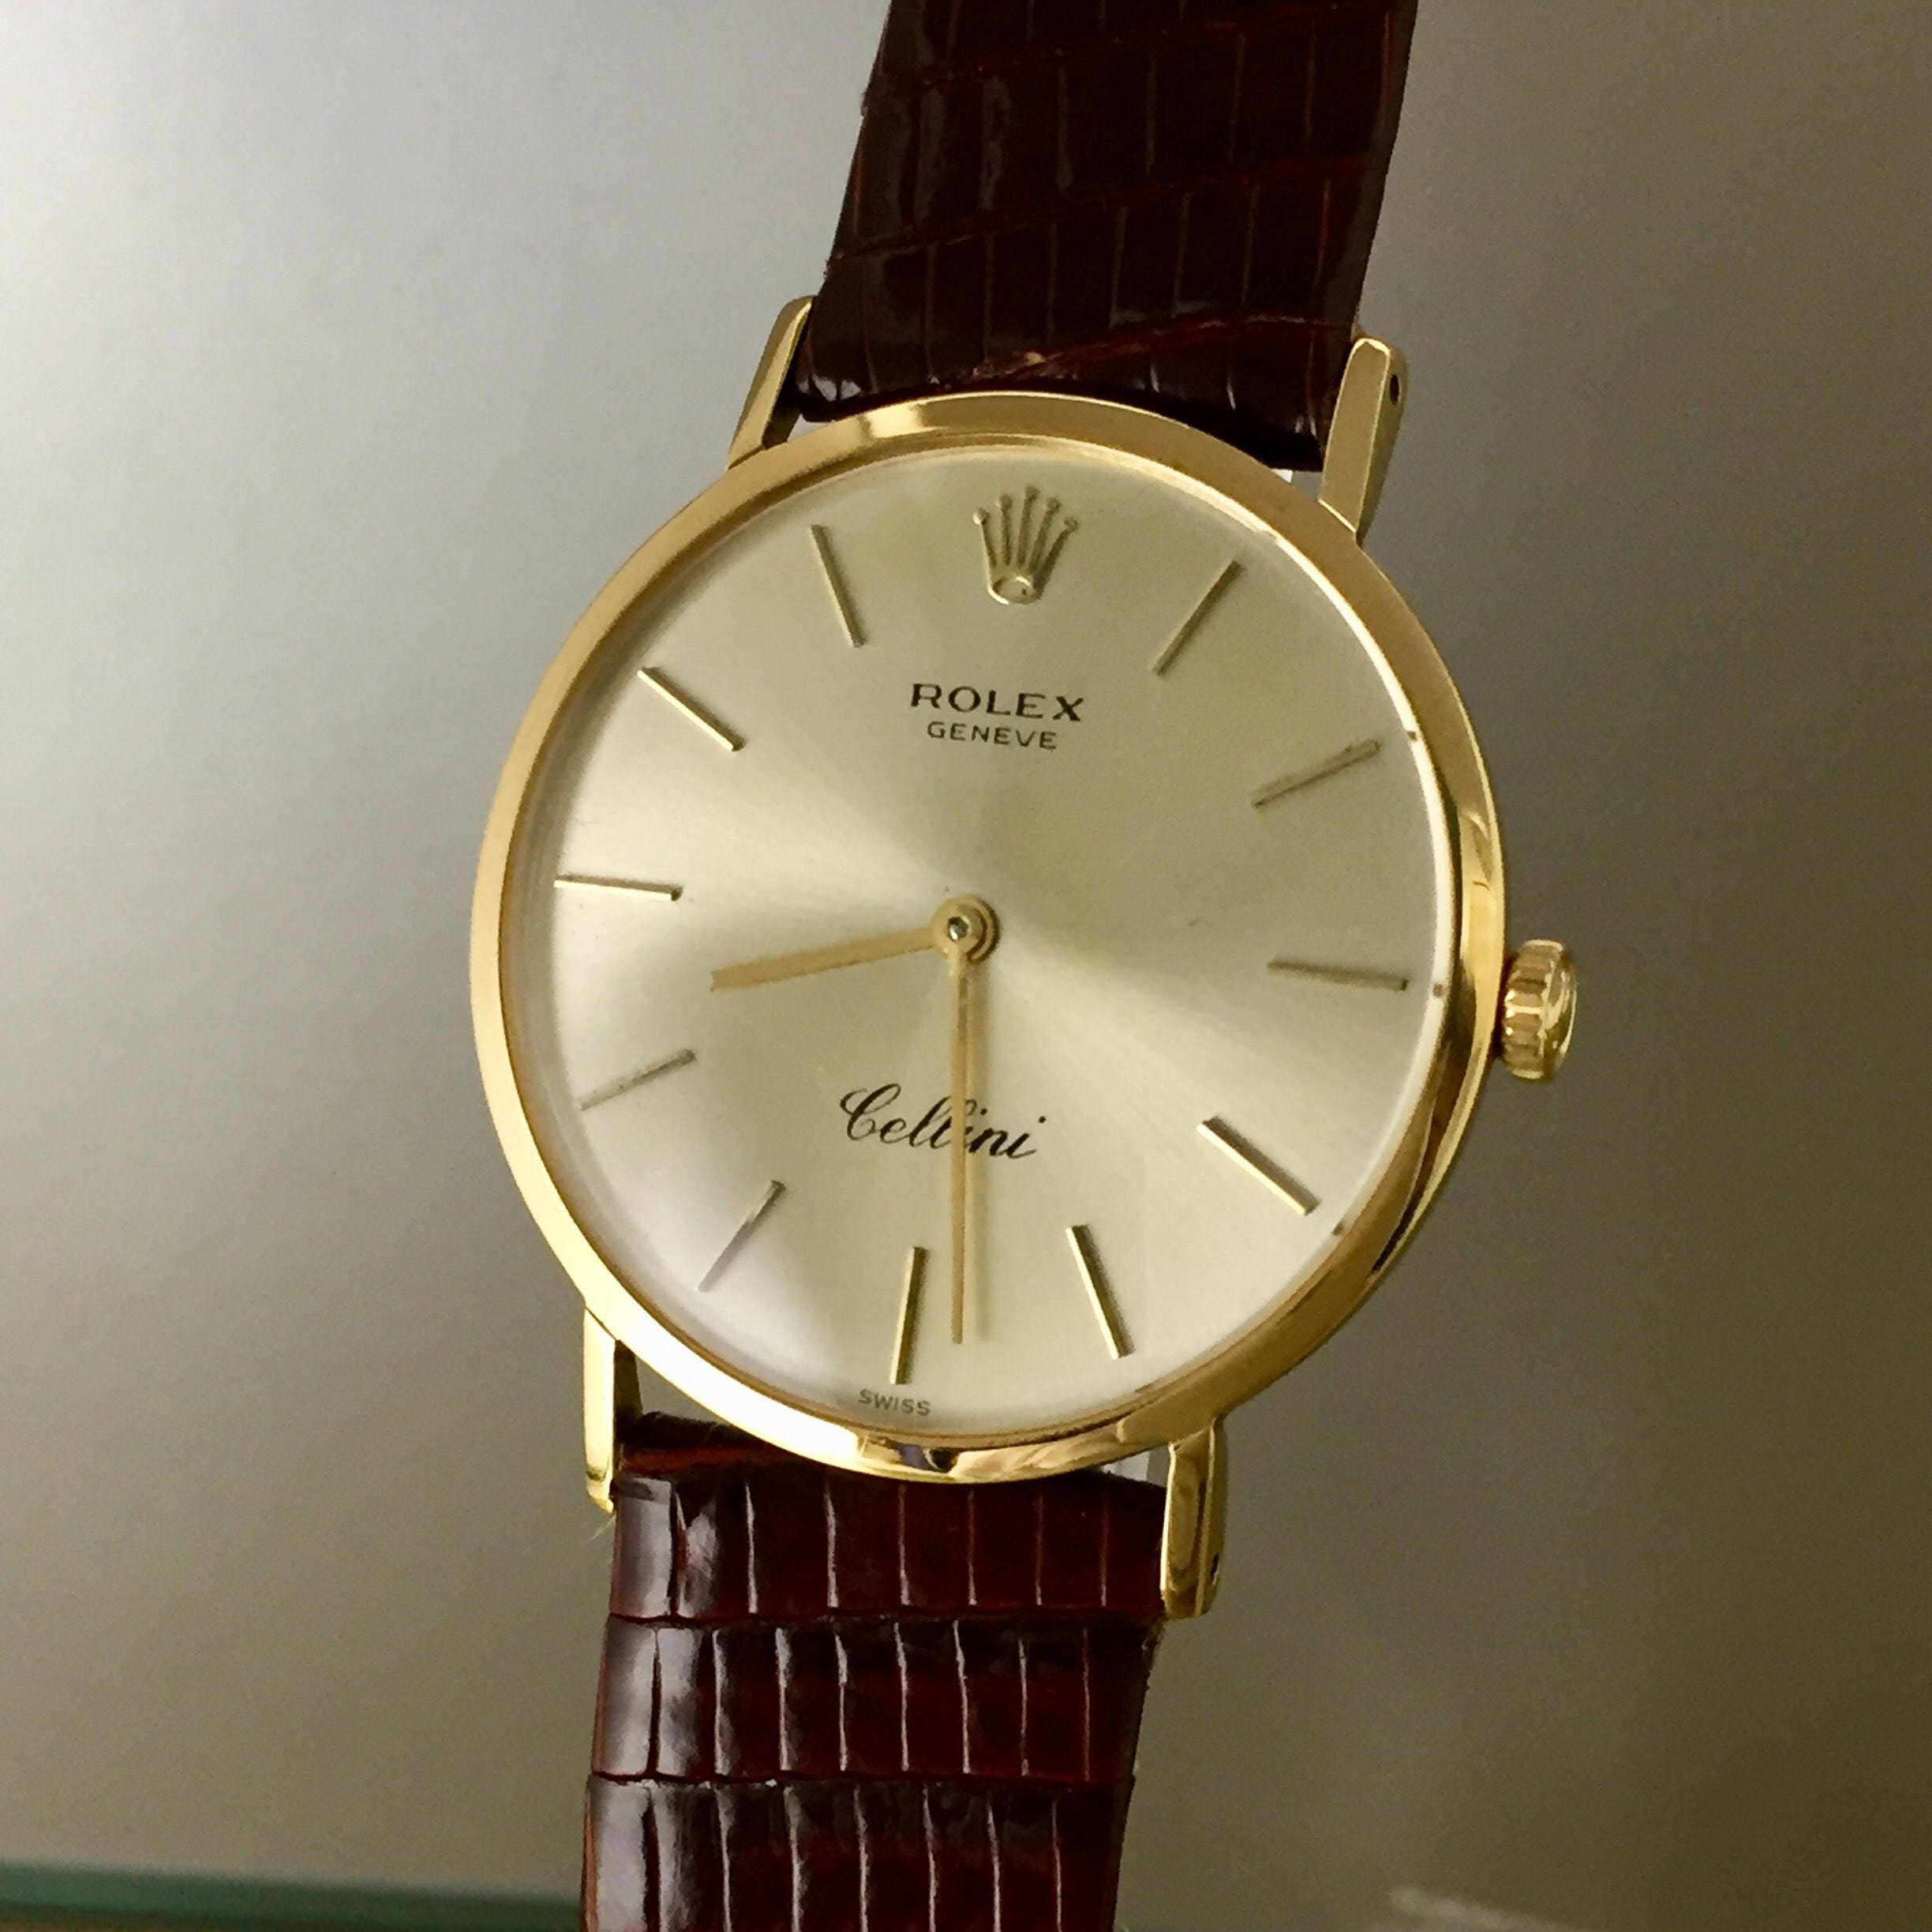 Fantastic Rolex Cellini Vintage Watch in 18kt yellow gold with